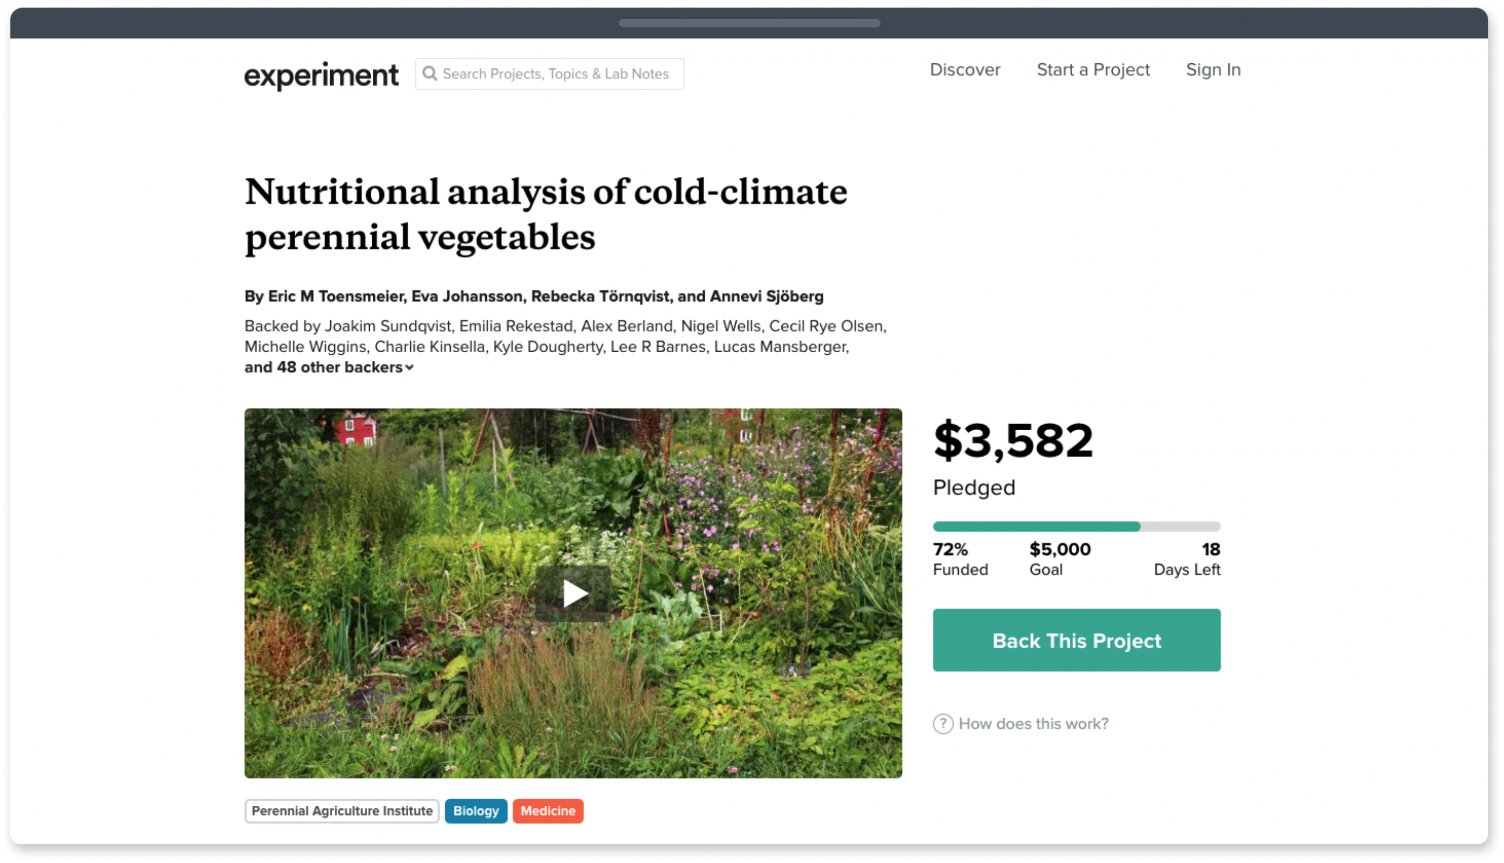 Experiment fundraising website for scientific research.